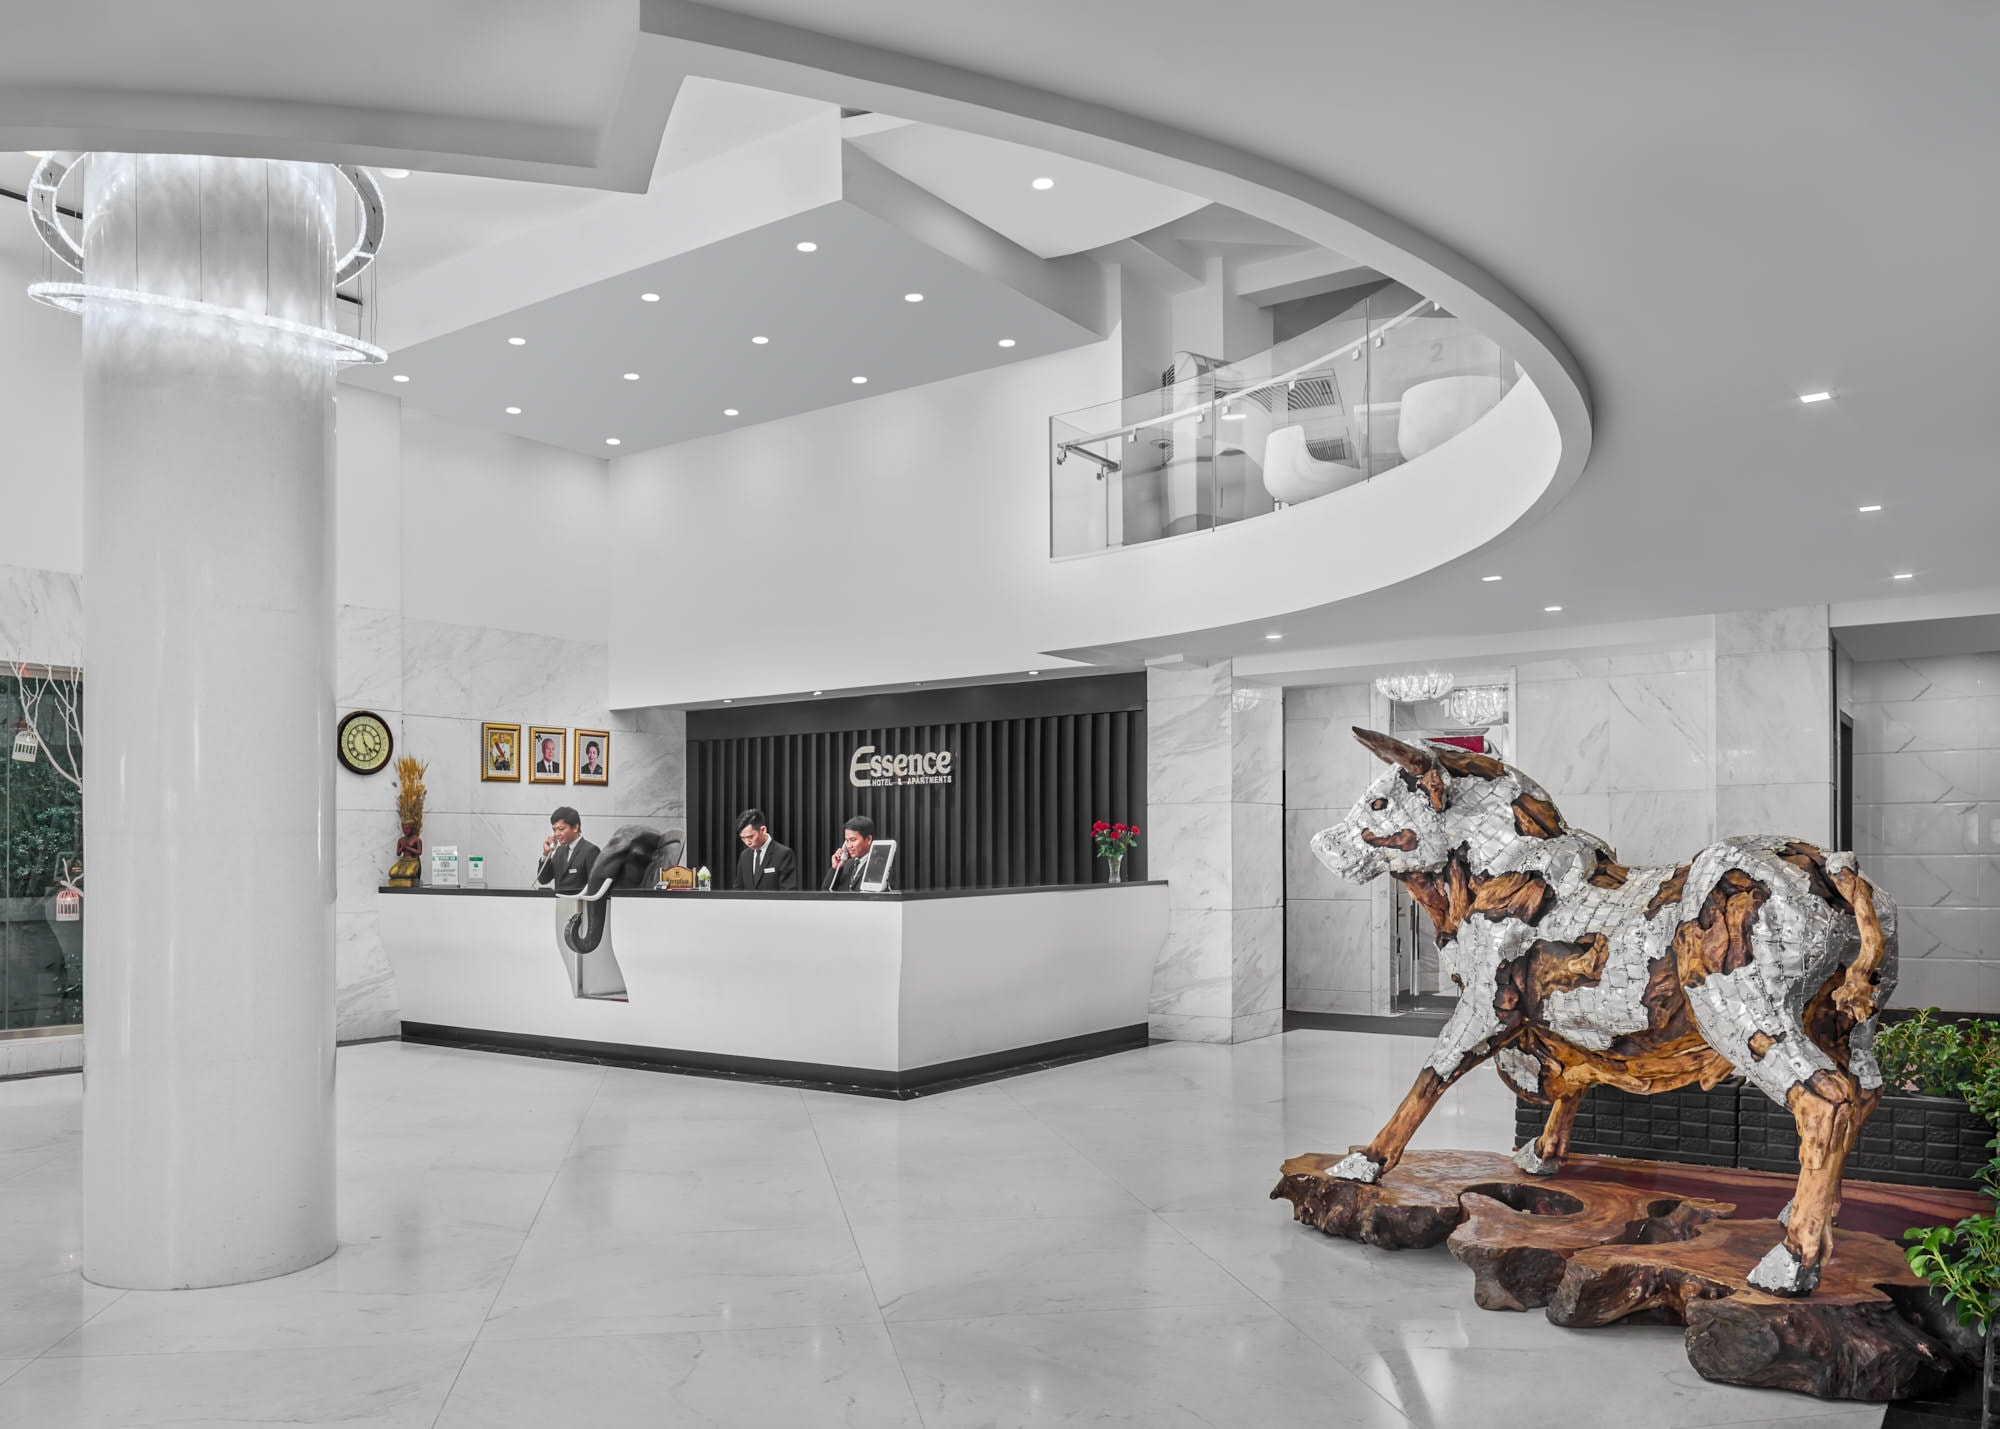 ota hotel images number 4 lobby